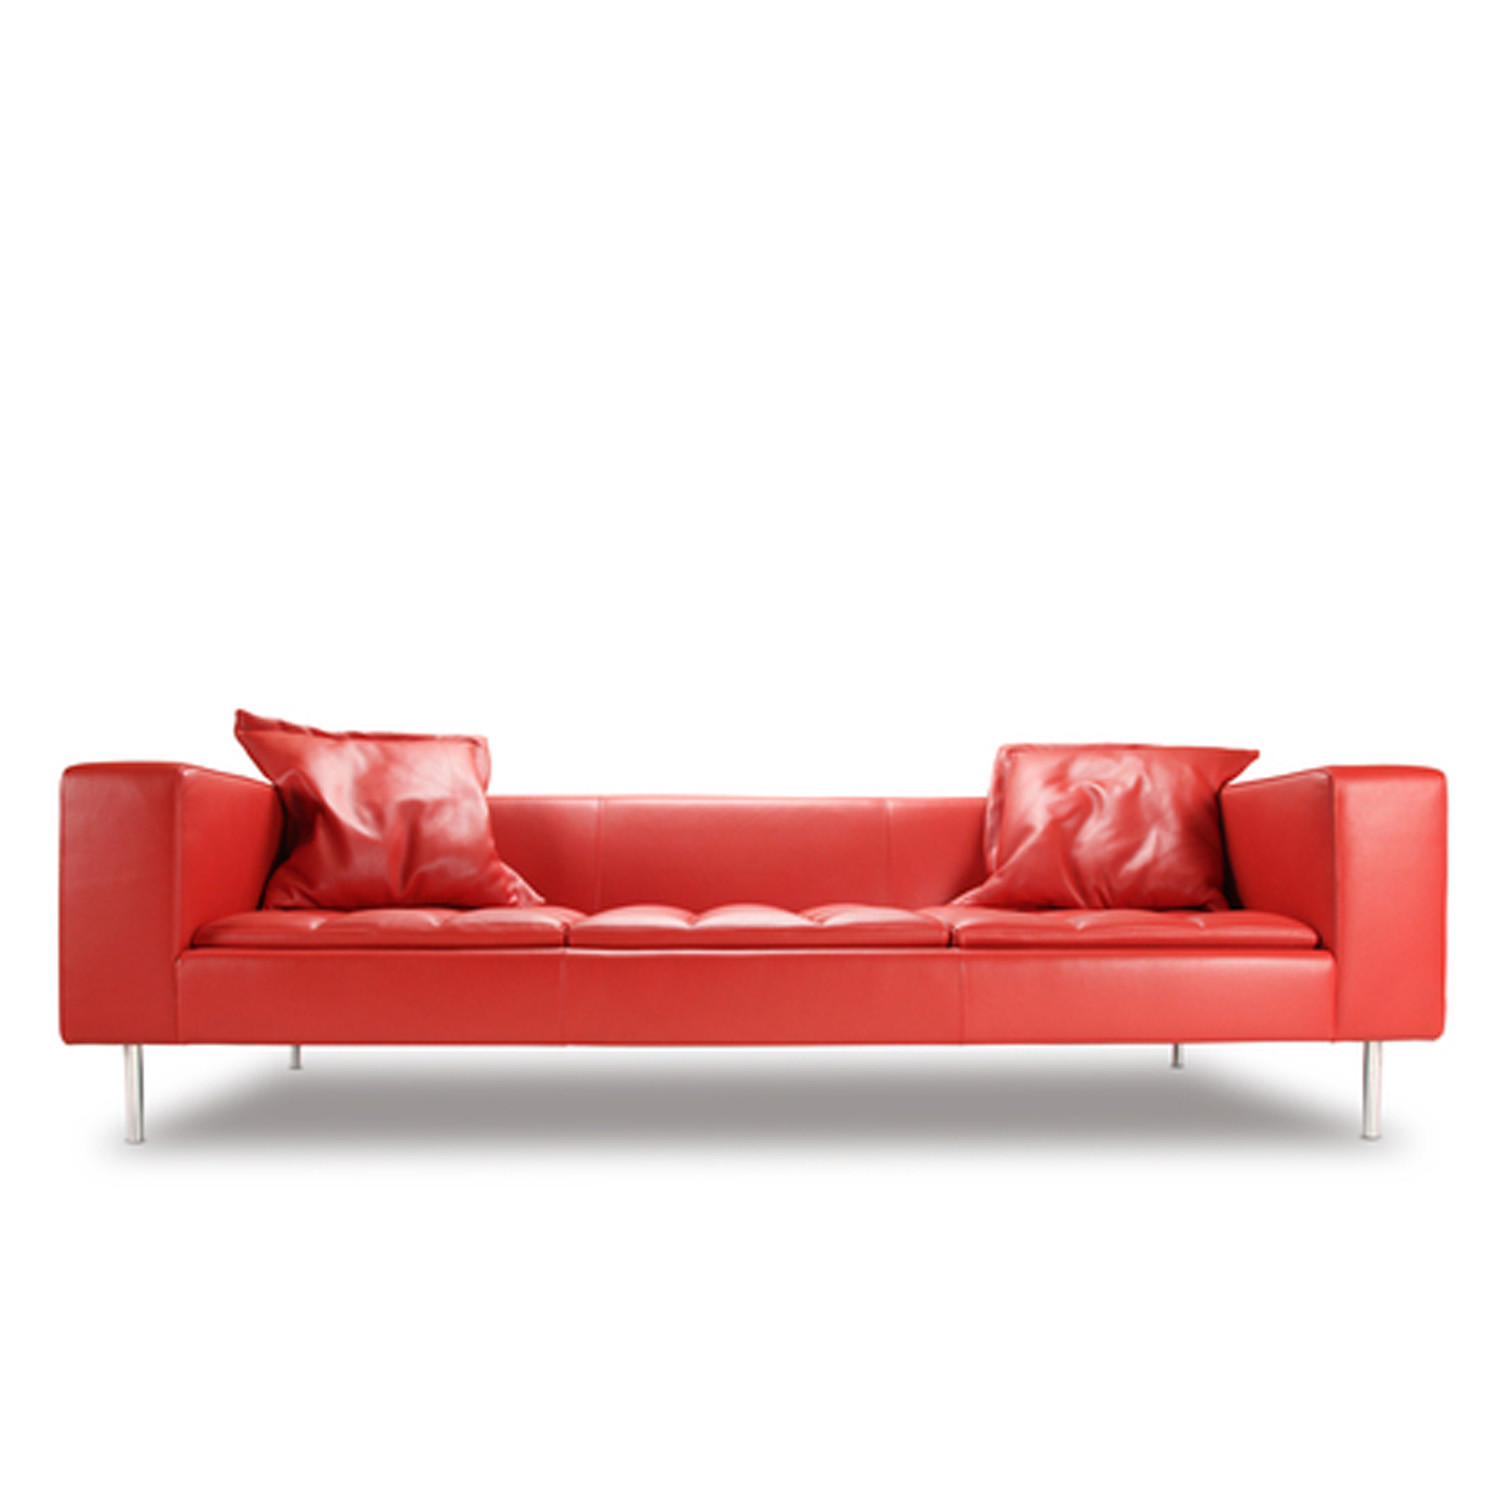 Fairfax Sofa by Boss Design